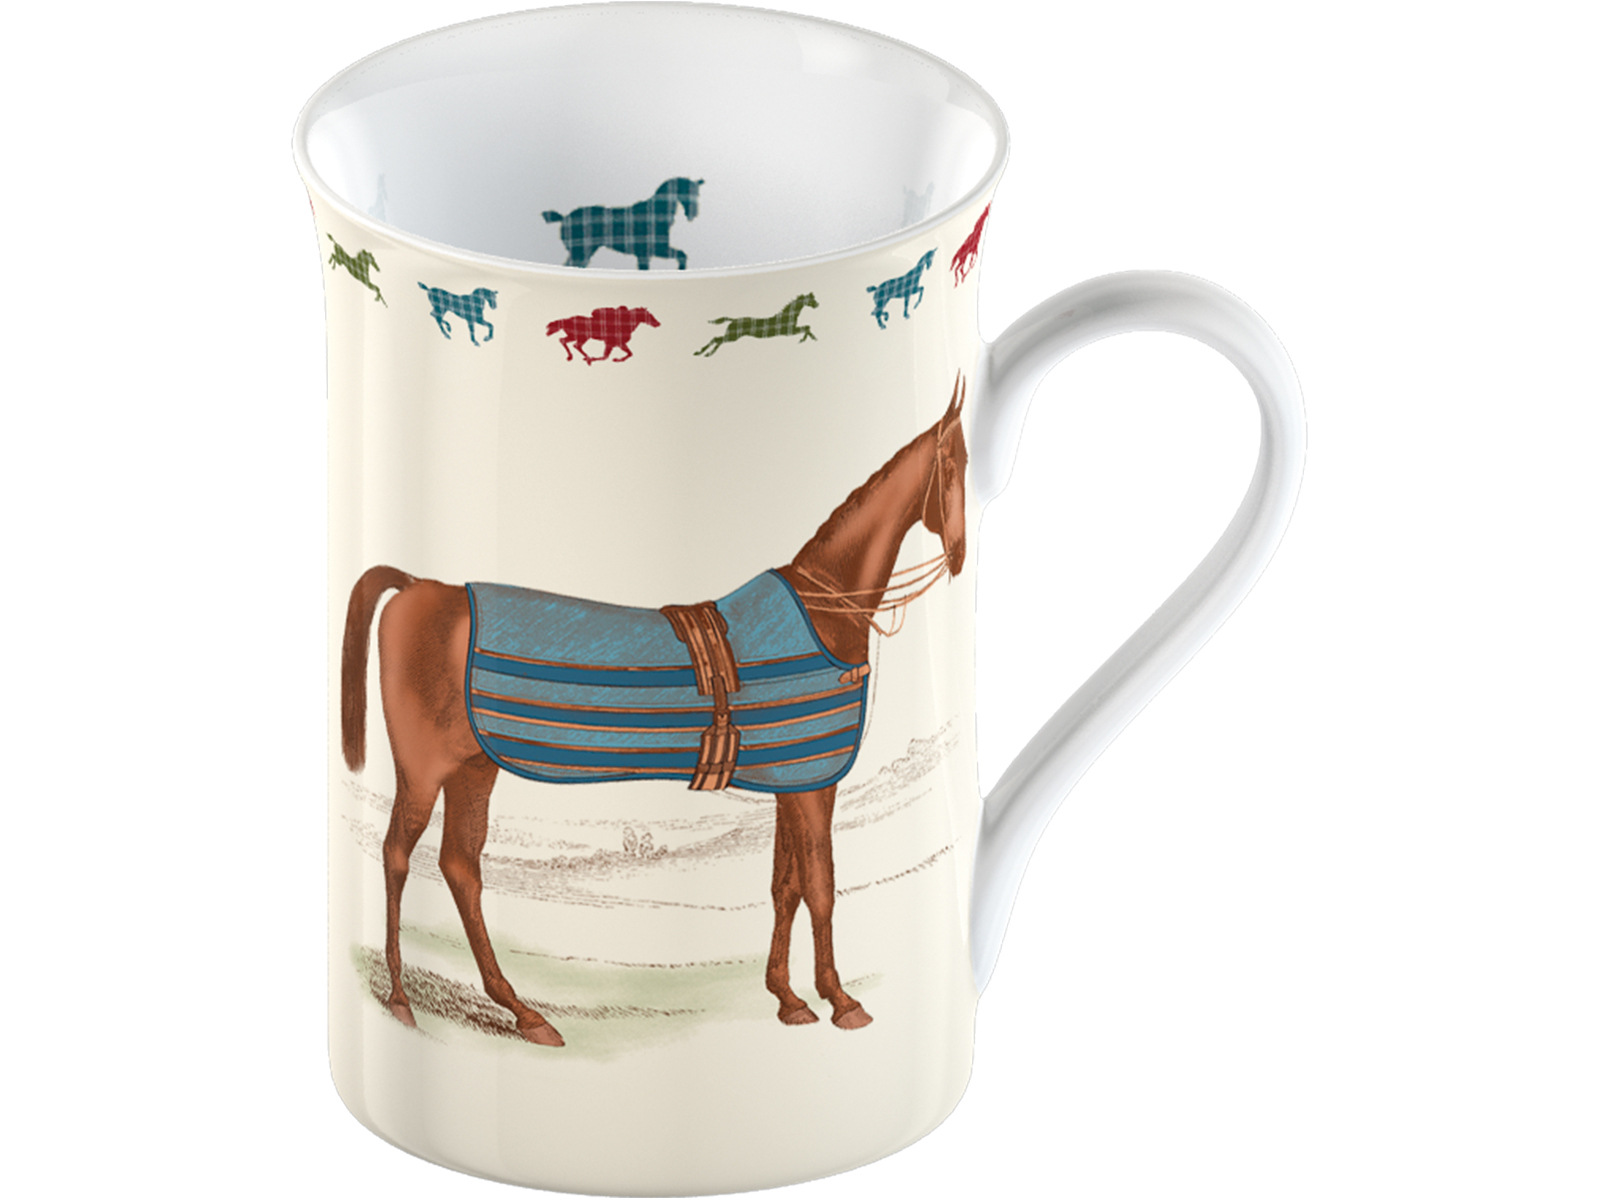 Creative Tops Day At The Races Mug In A Box